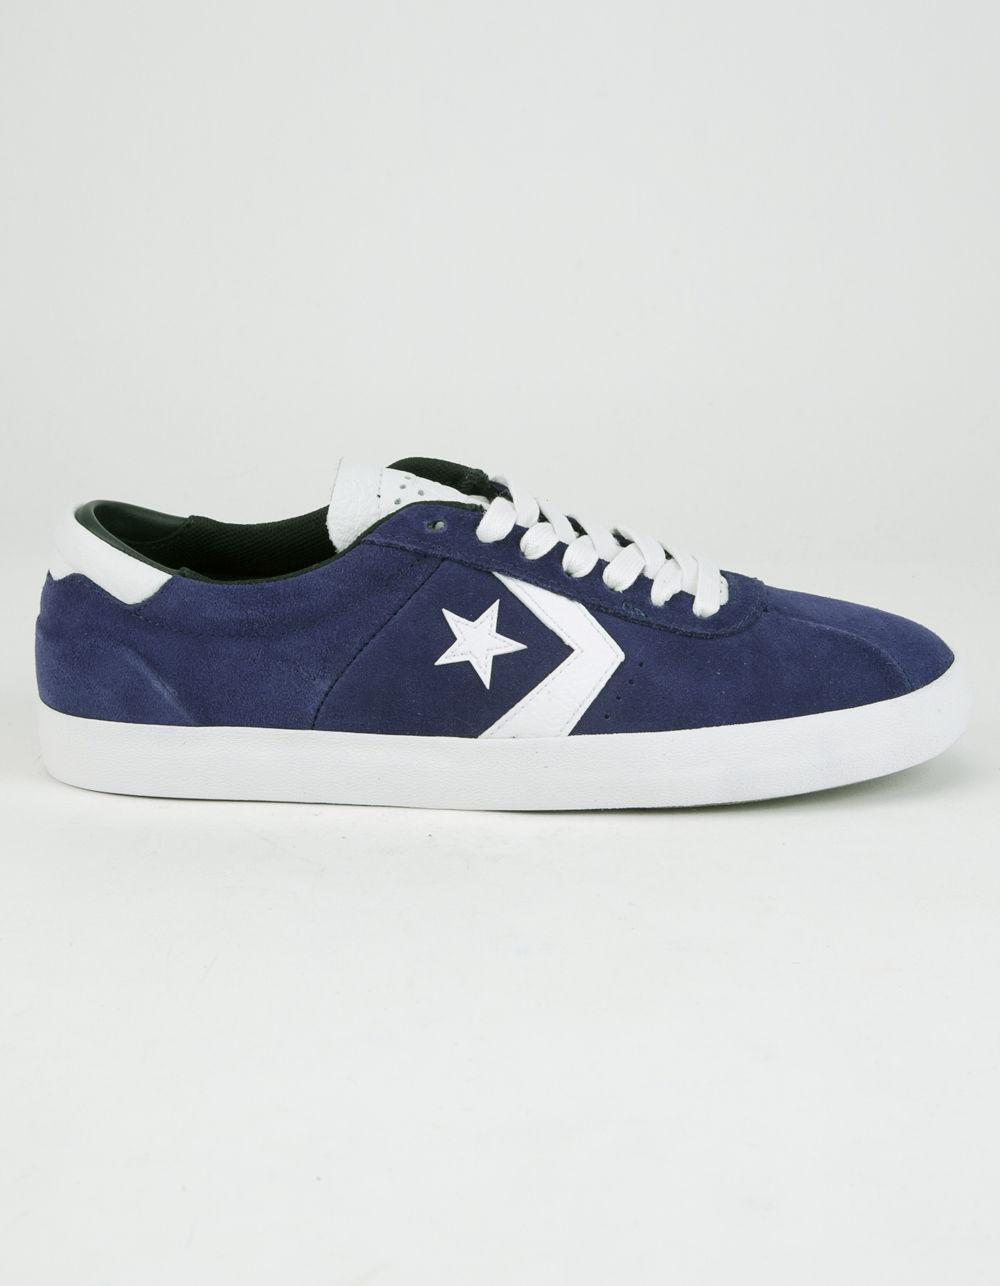 Converse Breakpoint Pro Suede Shoes in